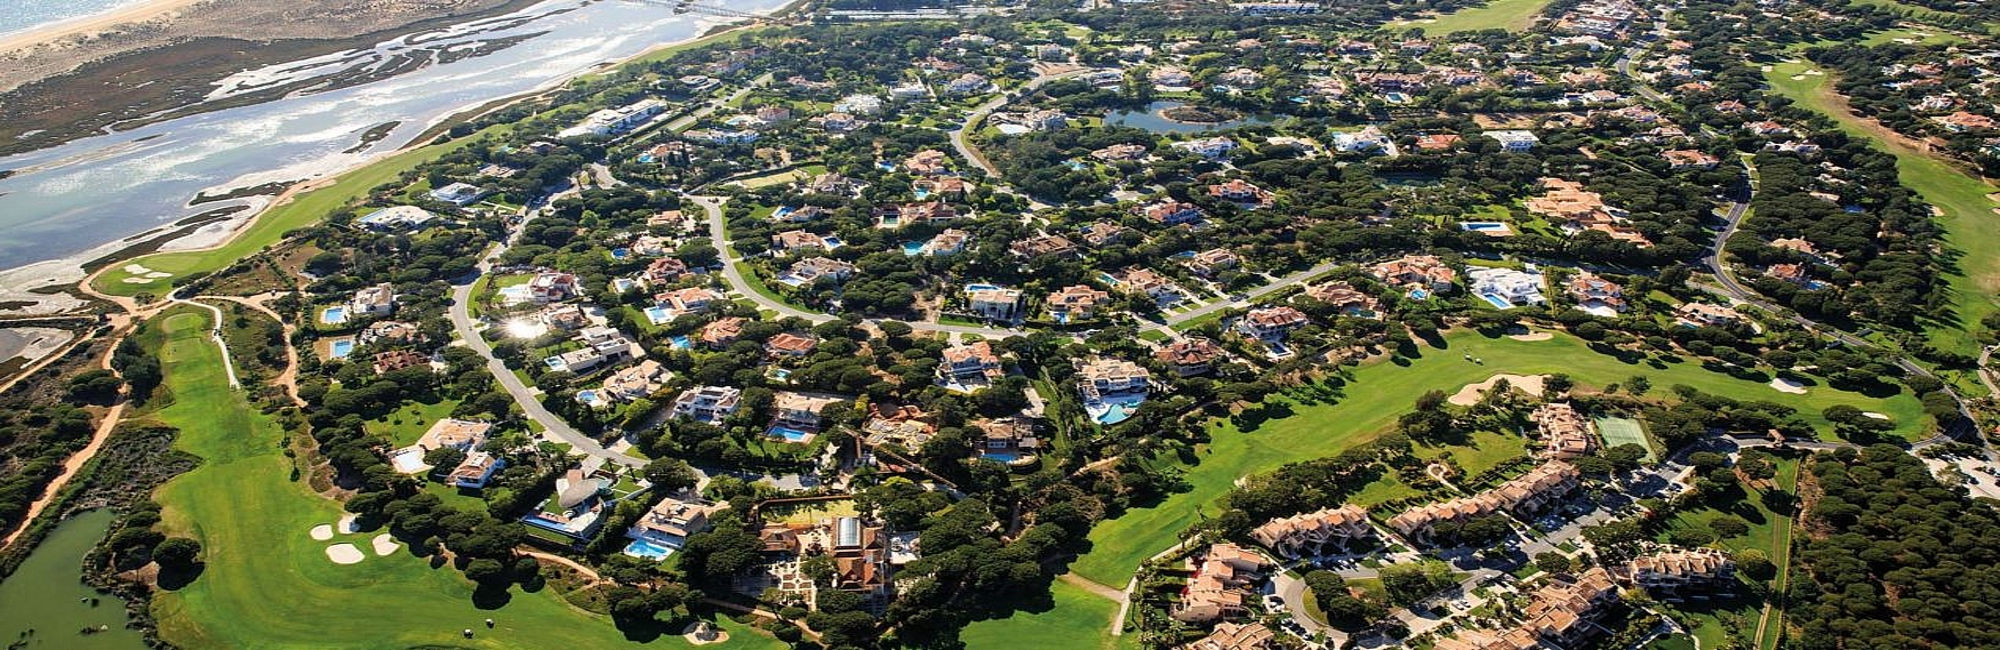 Quinta do Lago aerial view